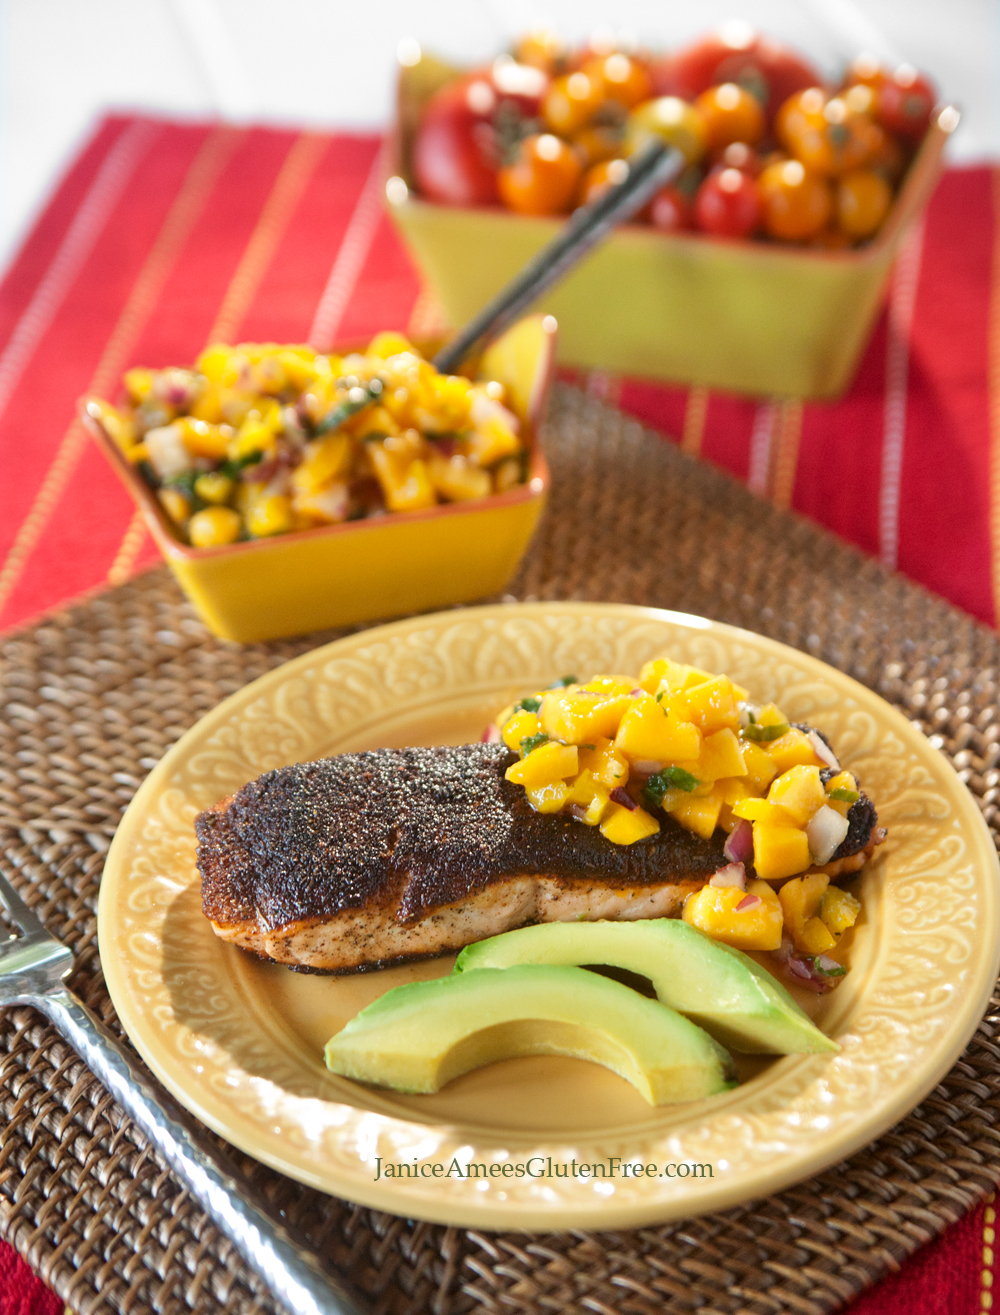 Blackened Salmon with Mango Salsa by Janice Amee's Gluten Free